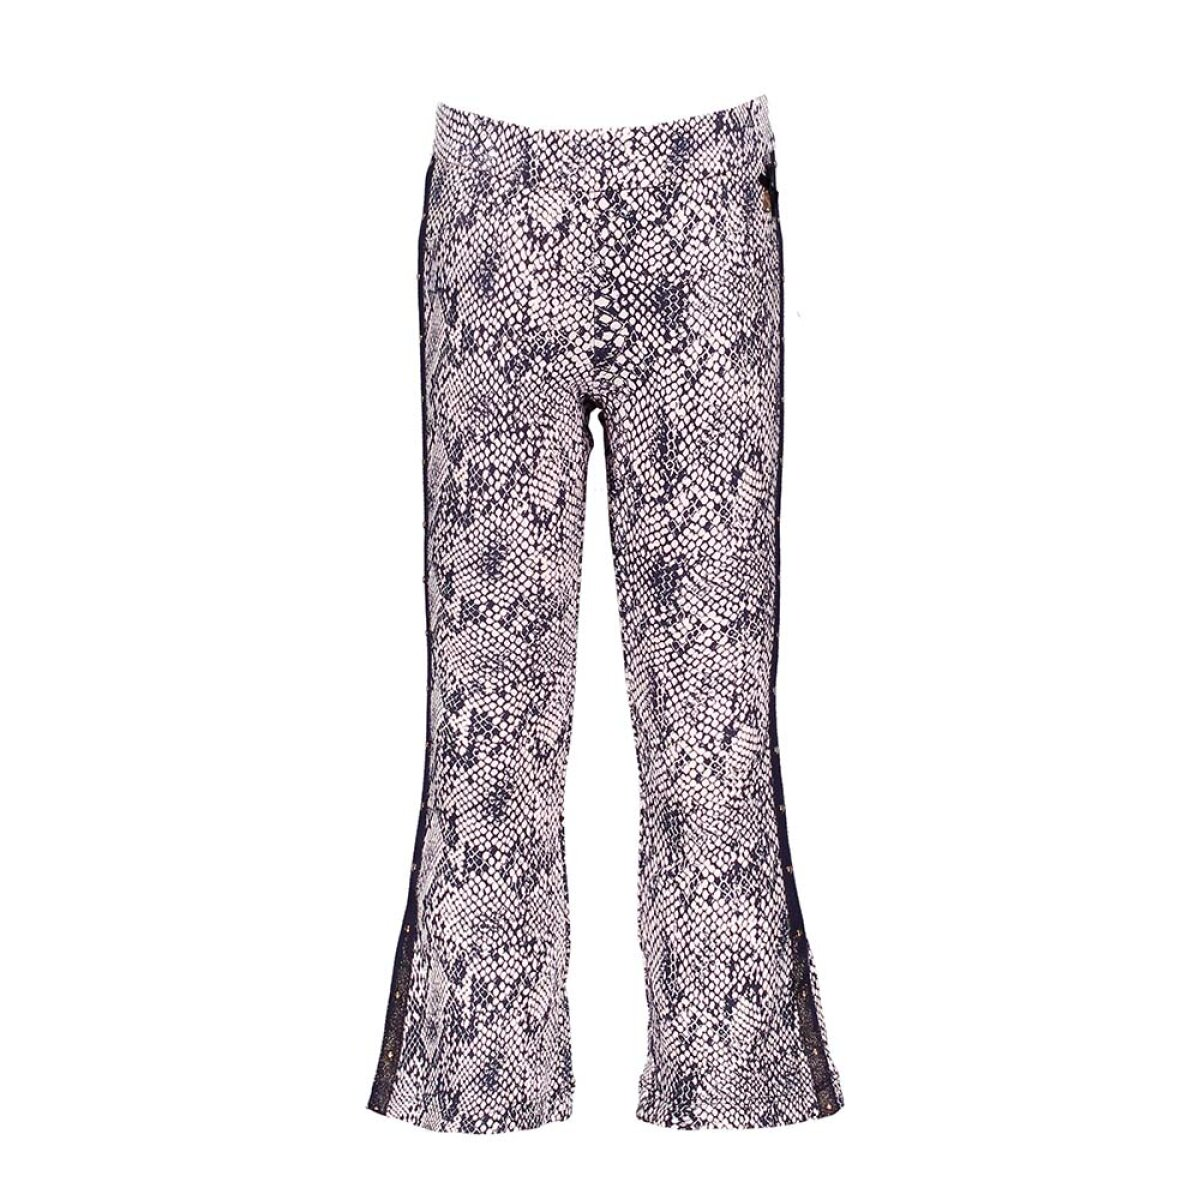 Le Chic meisjes flaired pants C001-5634 blauw